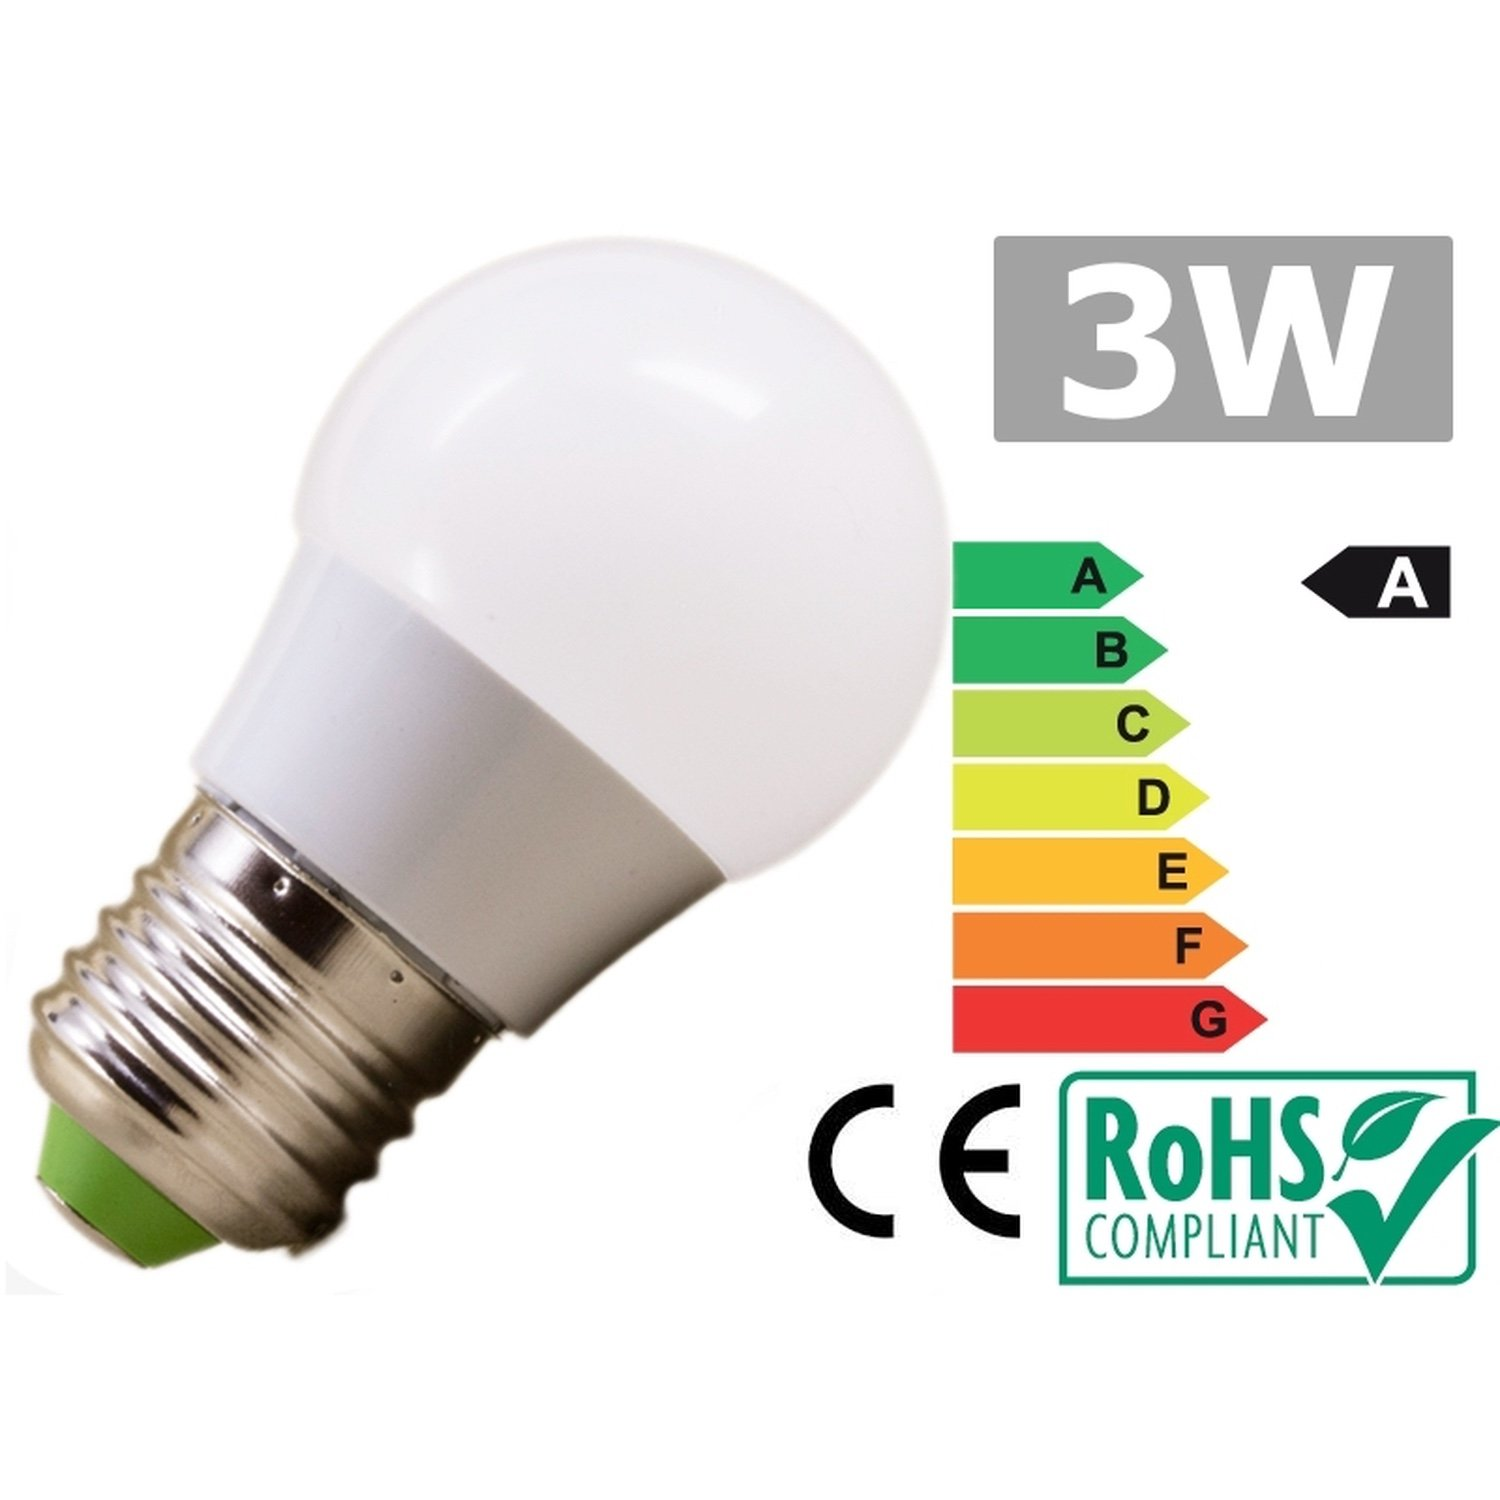 Led bulb E27 3W 3000K warm white